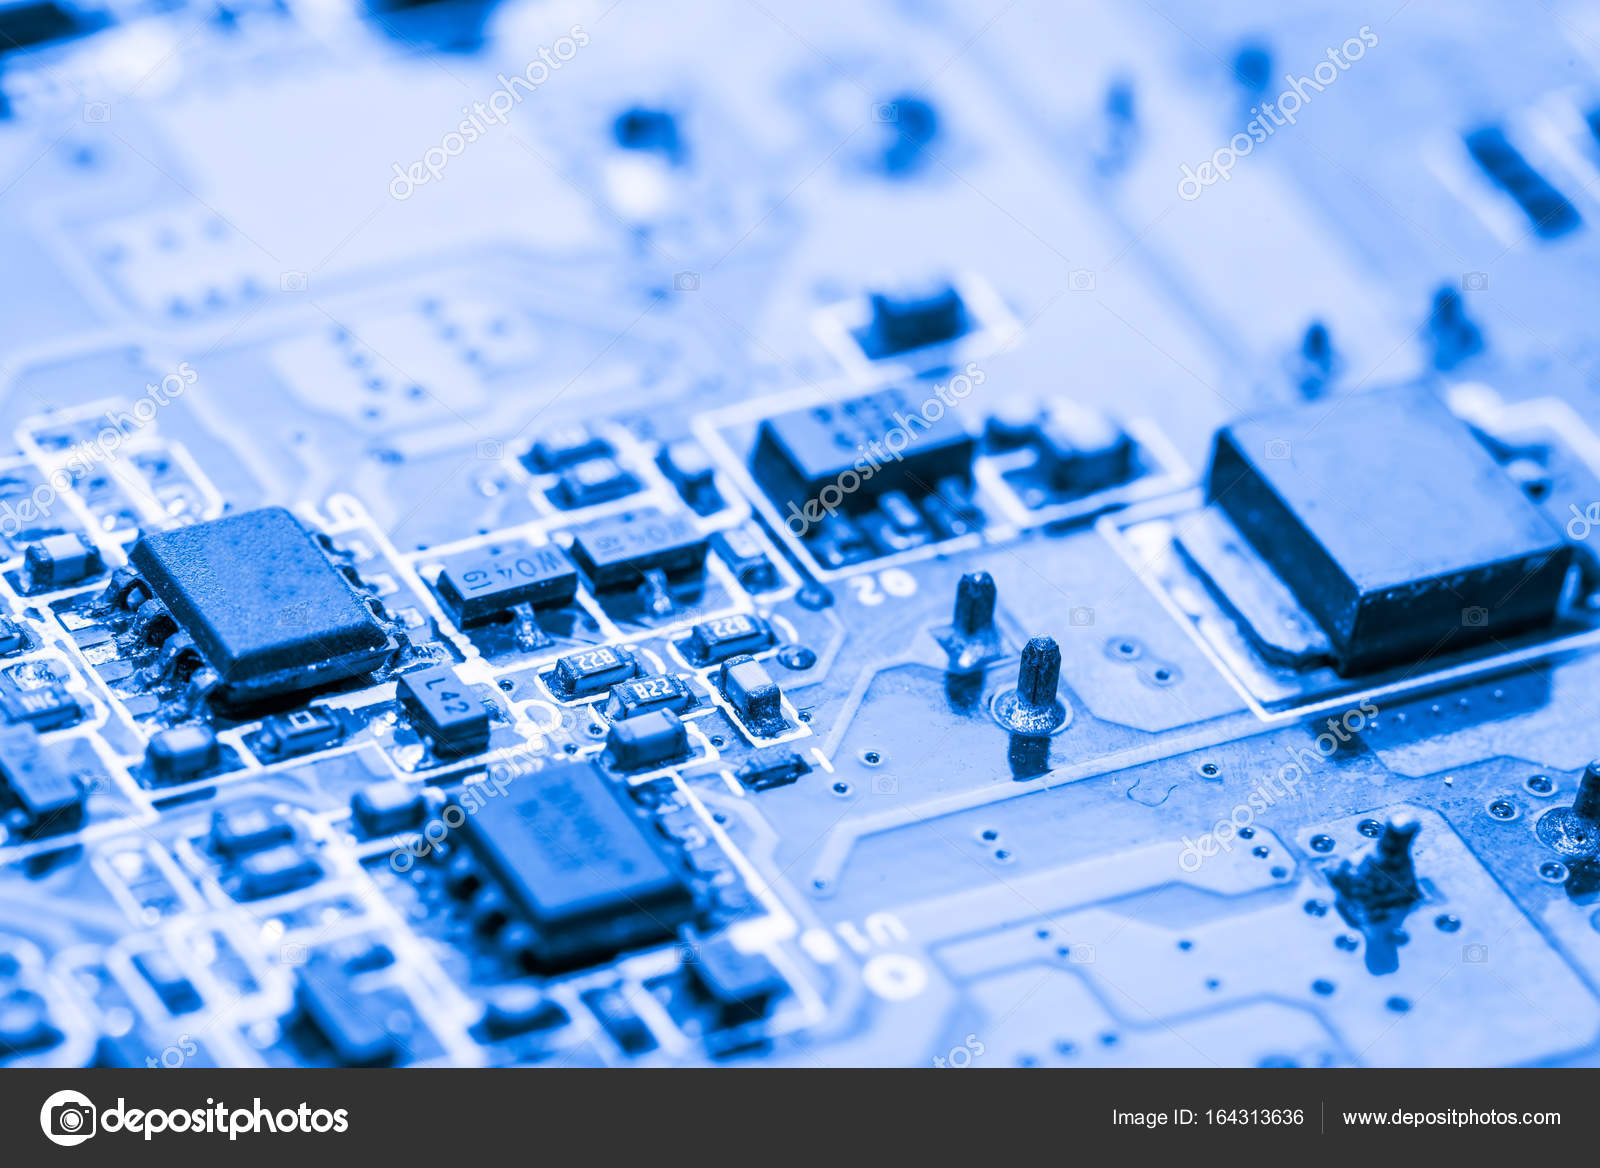 Abstract Close Up At Electronic Circuits We See The Technology Of Motherboard Circuit Board Components Find Mainboard Which Is Important Background Computerlogic